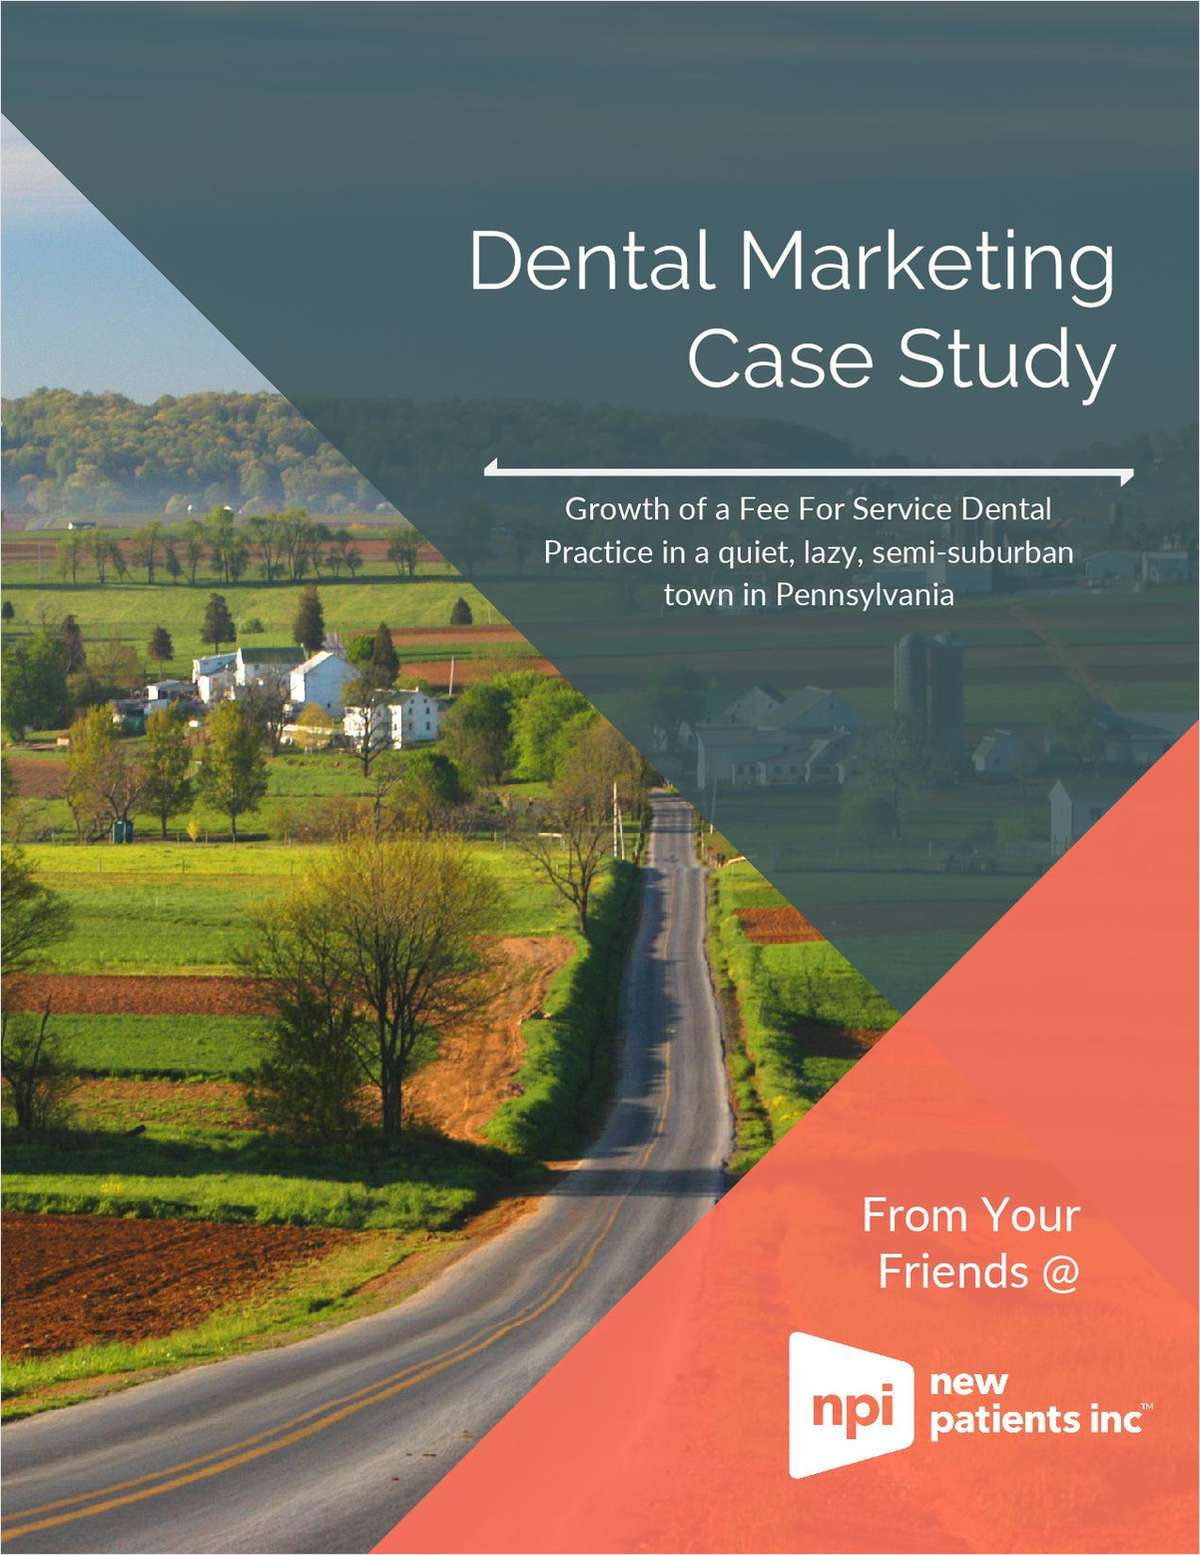 Growth of a fee for service dental practice in a quiet, lazy, semi-suburban town in Pennsylvania.